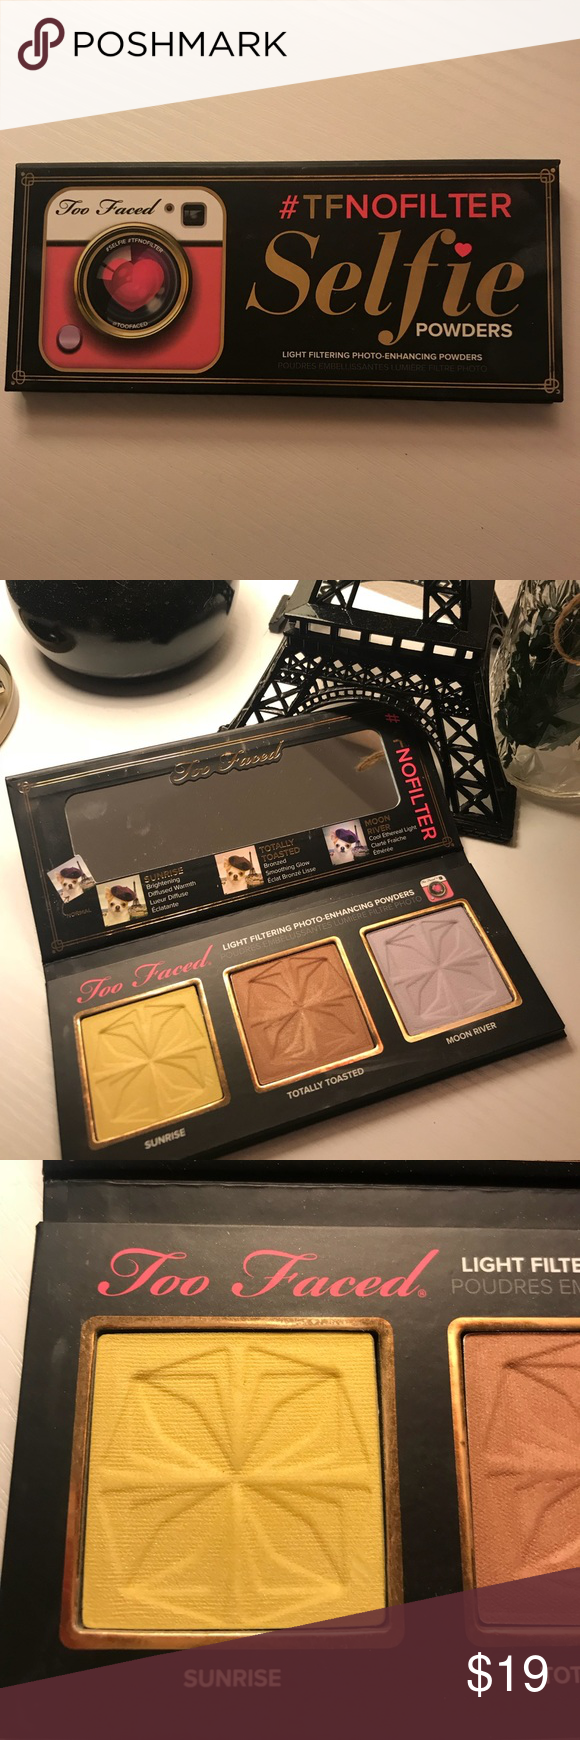 Too Faced No Filter Selfie Powders Discontinued Too Faced